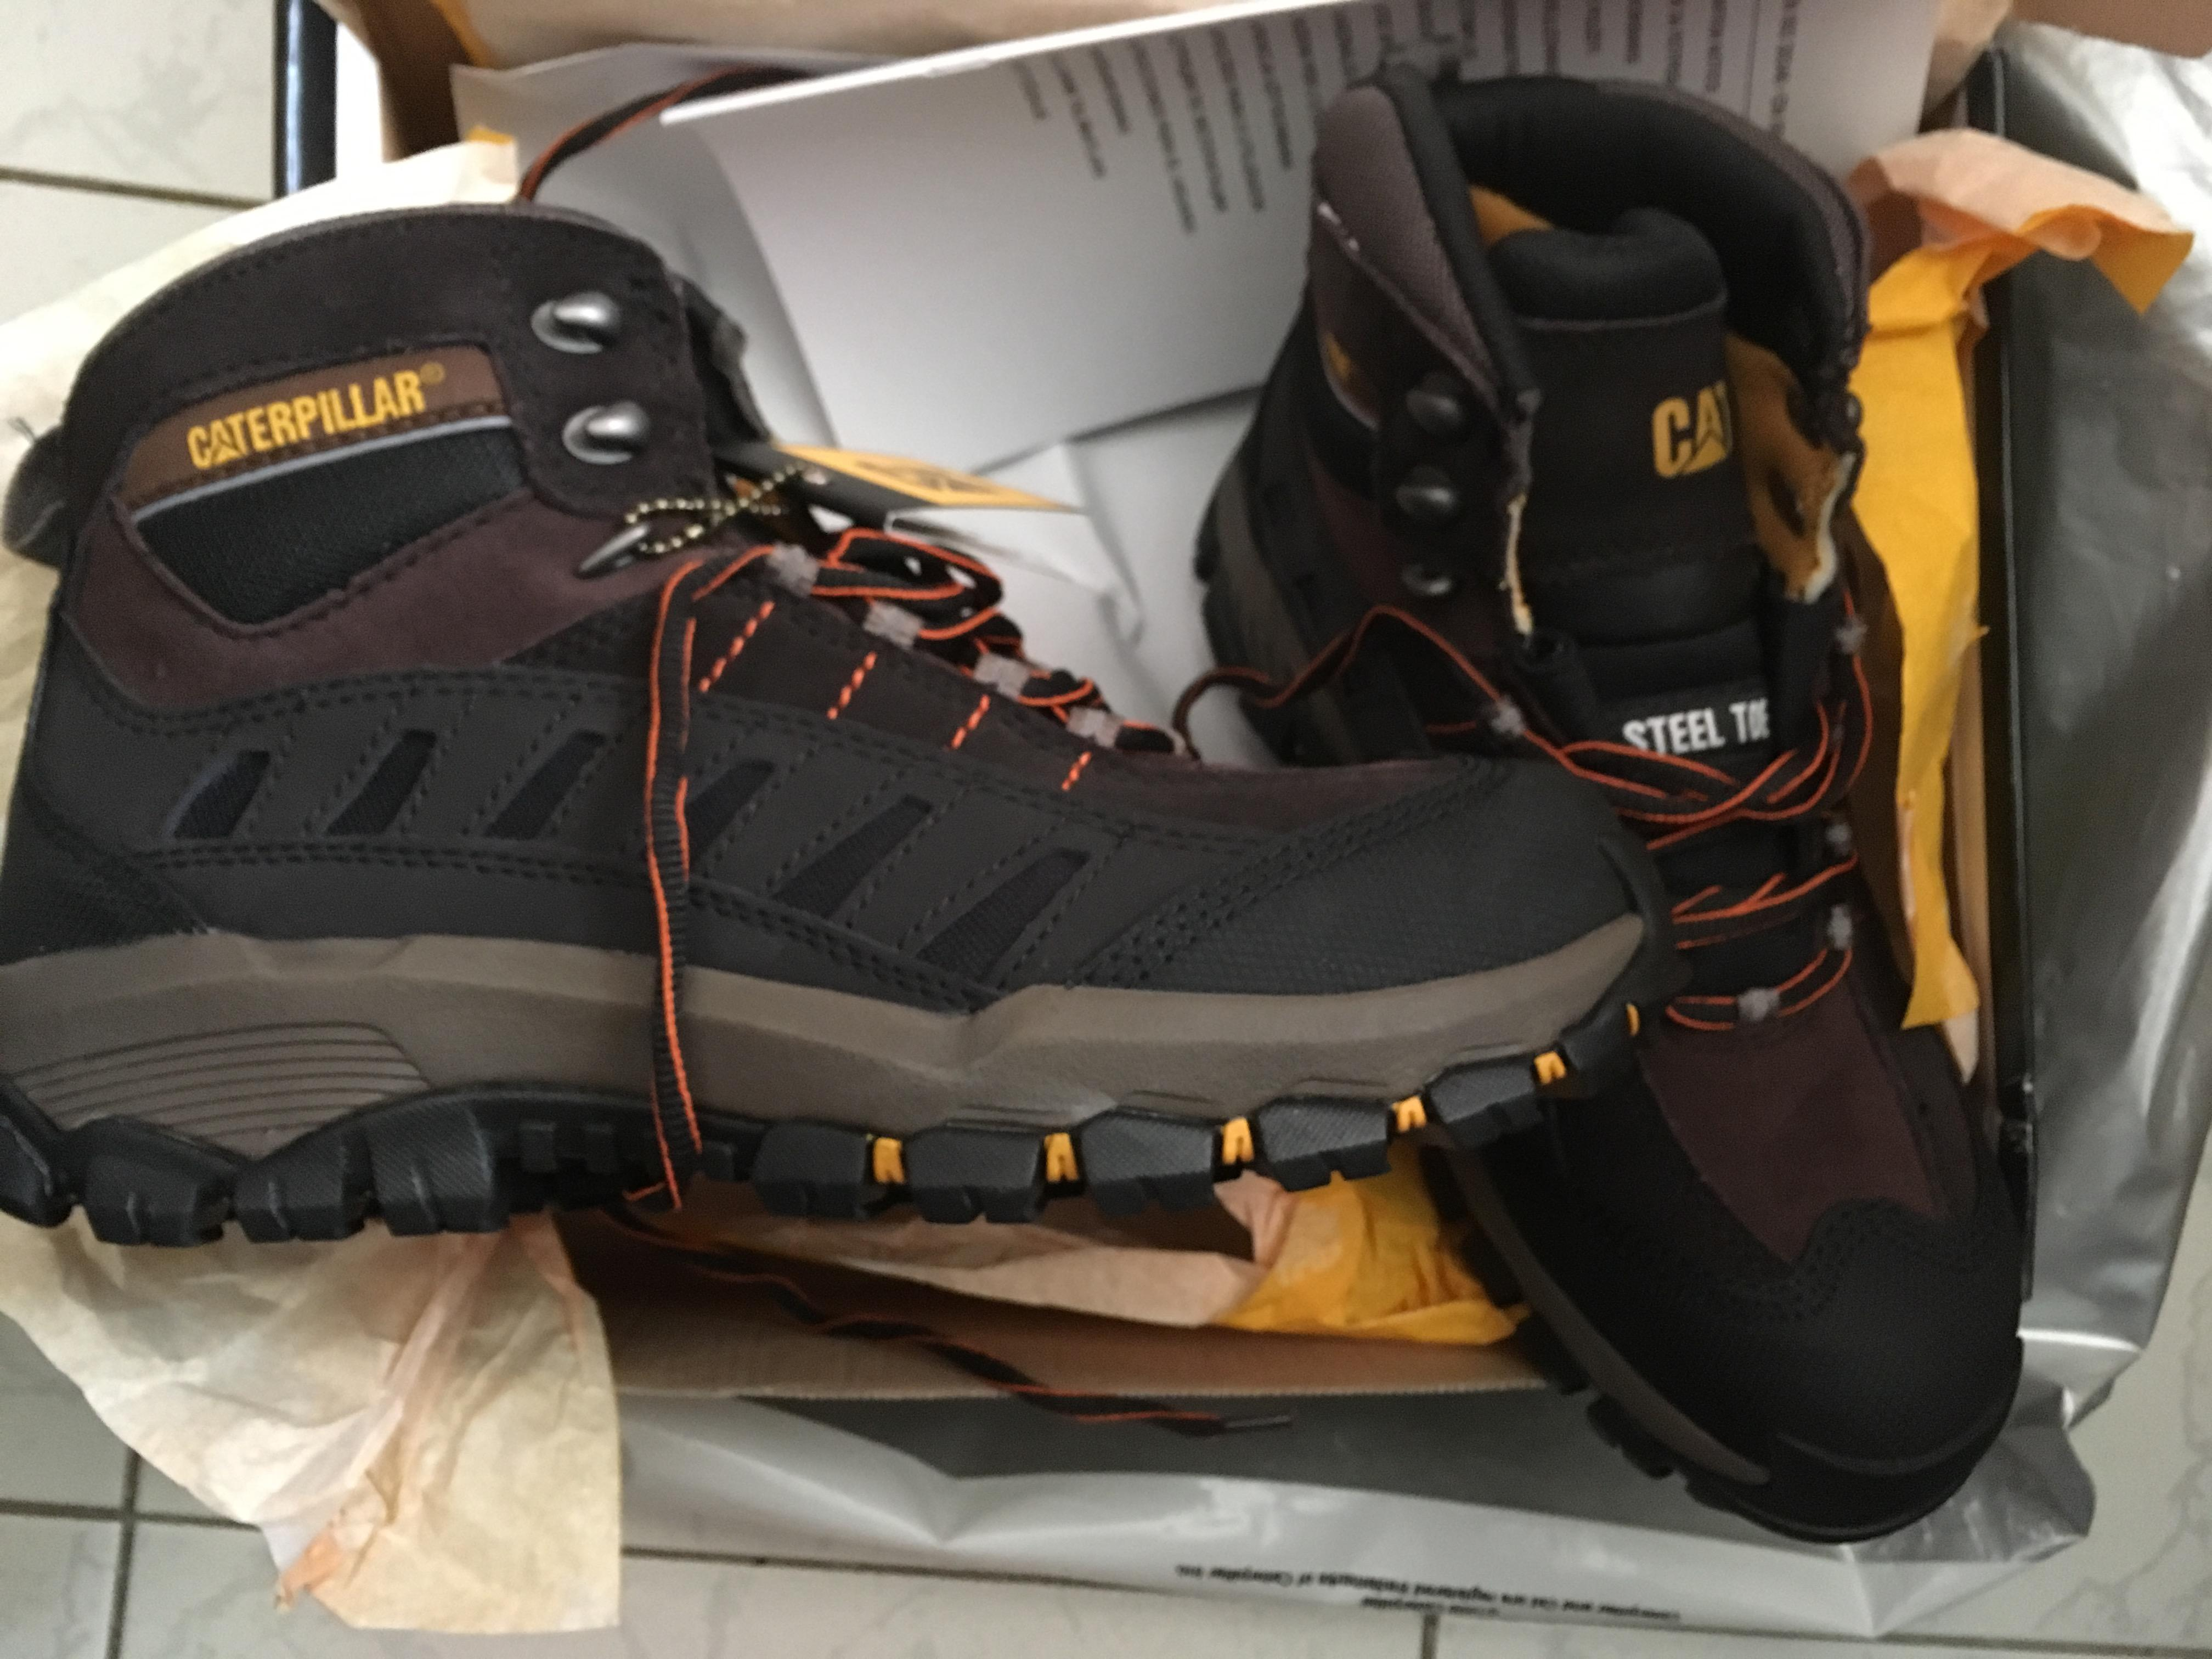 6b9f7563 ... BRAND NEW CAT (CATERPILLAR) Safety Shoes with Steel Toe in Boxed  Packing Half price ...